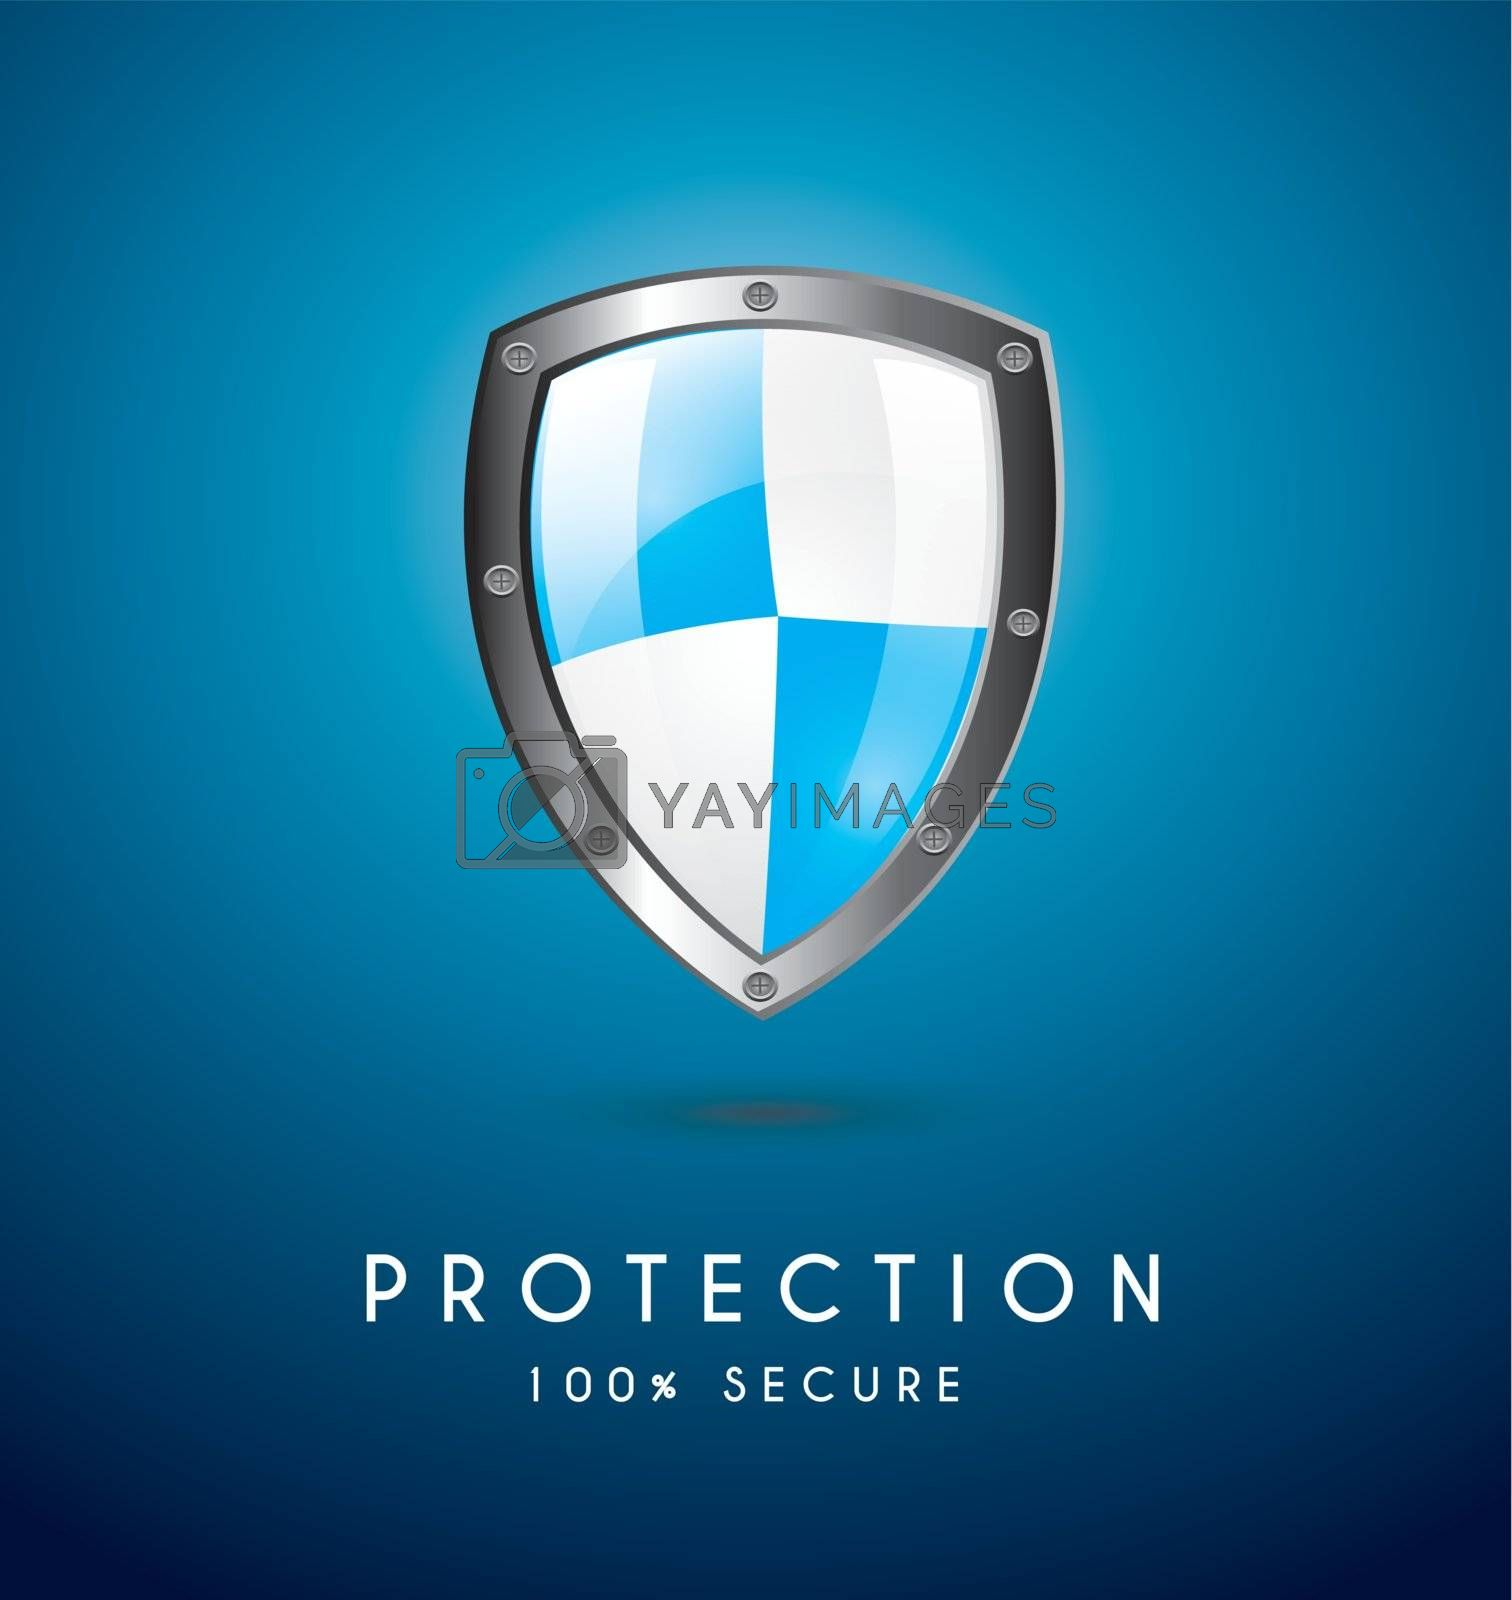 Protection icon over blue background vector illustration